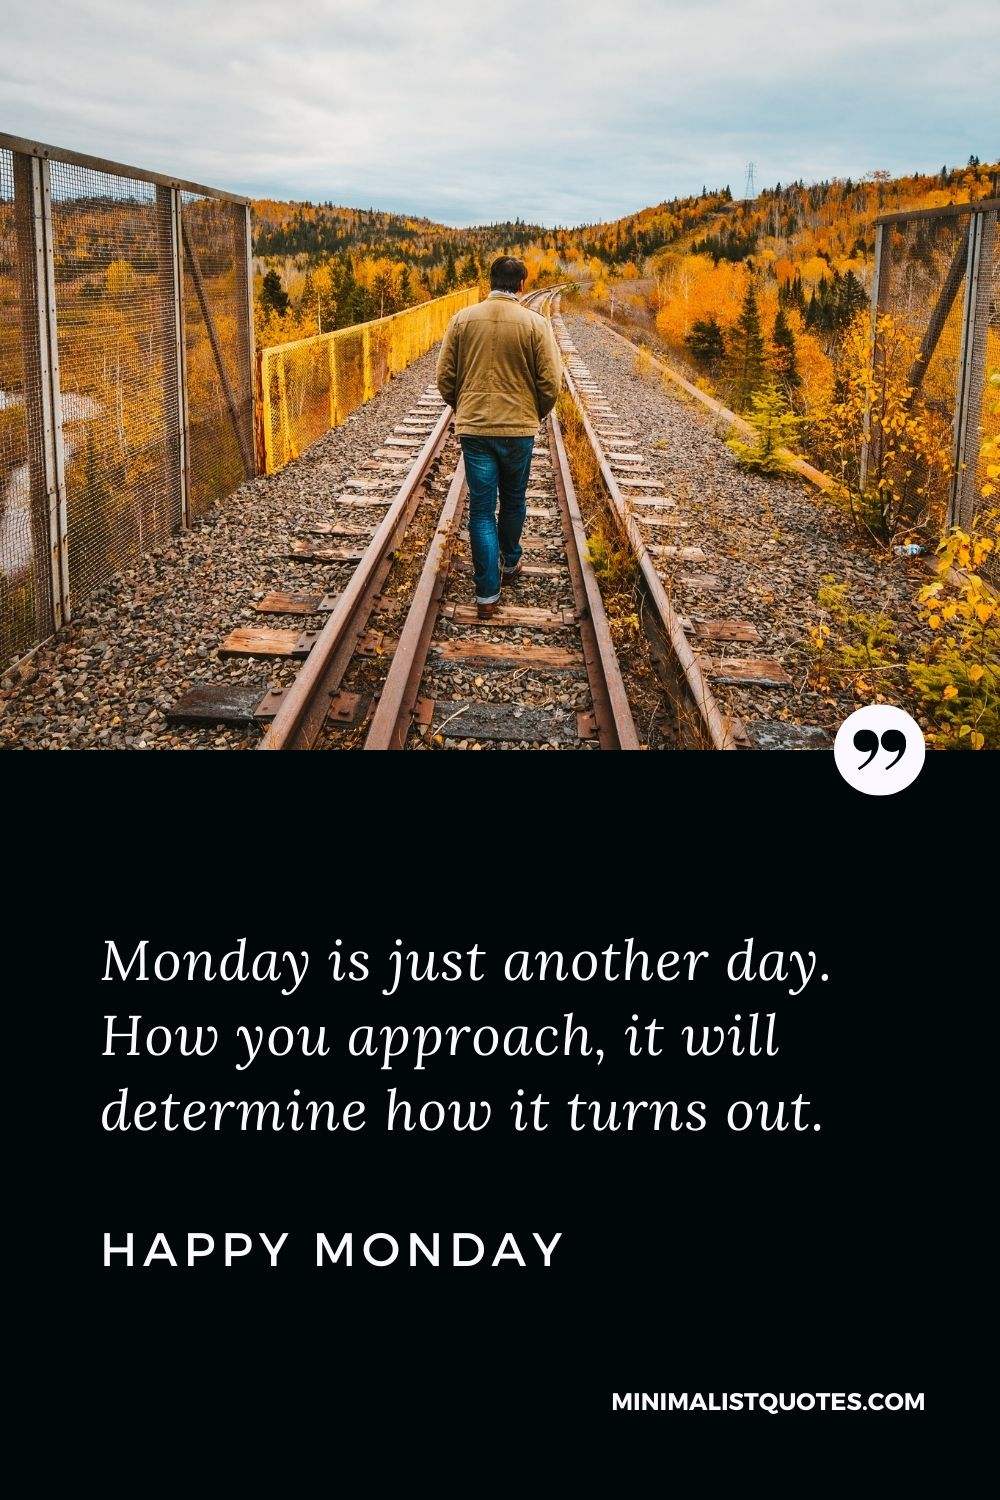 Monday Motivation Quote & Message: Monday is just another day. How you approach, it will determine how it turns out. Happy Monday!